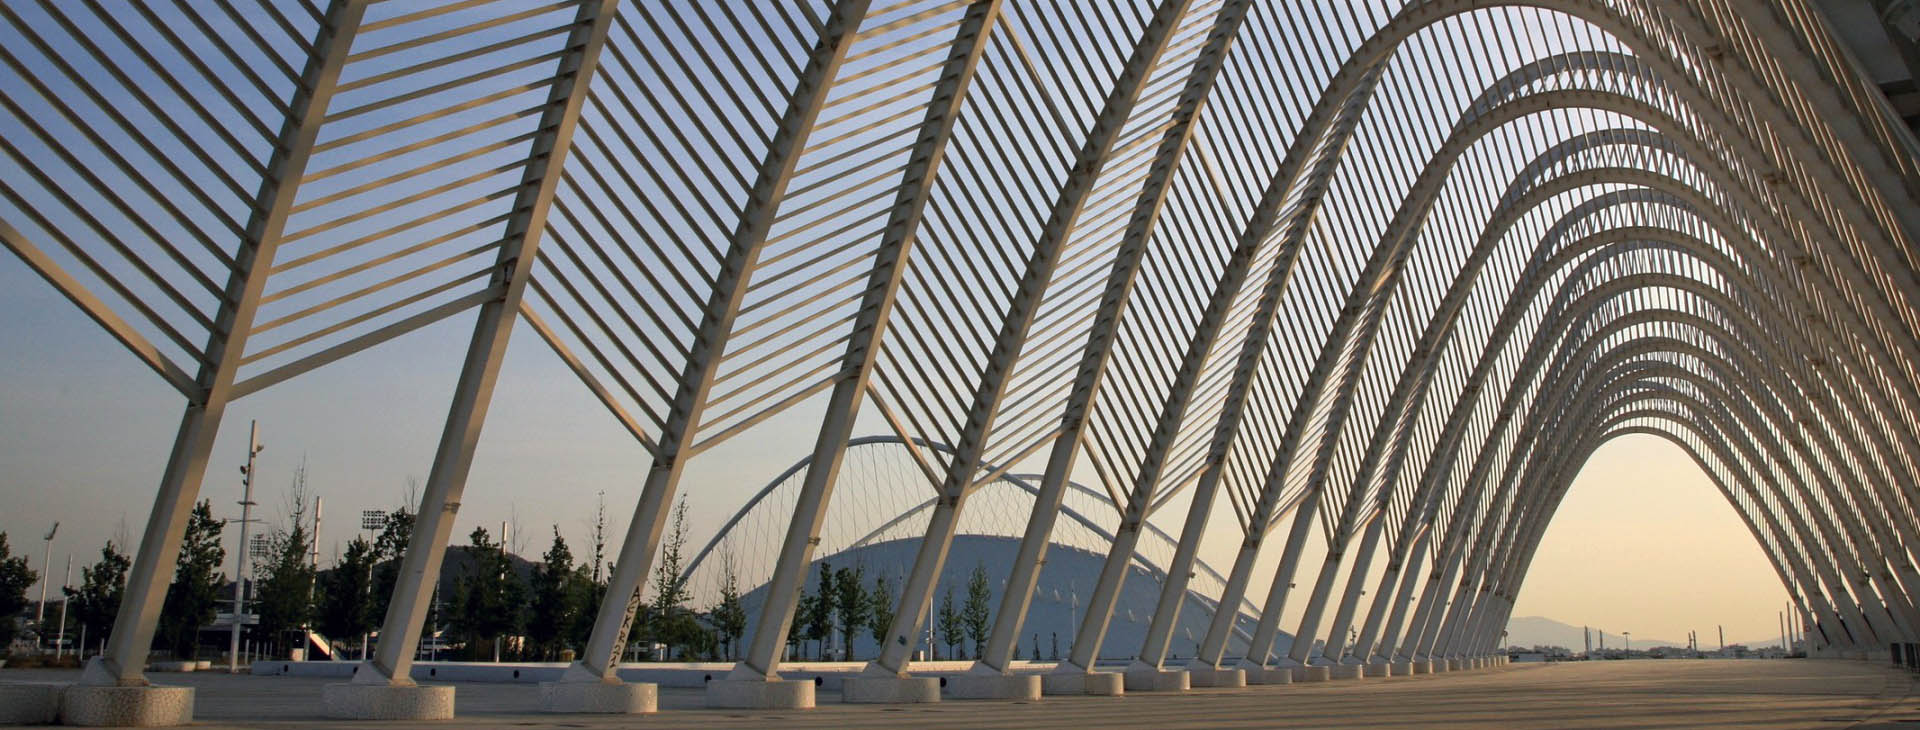 Arches at the Olympic Sports Complex, Athens